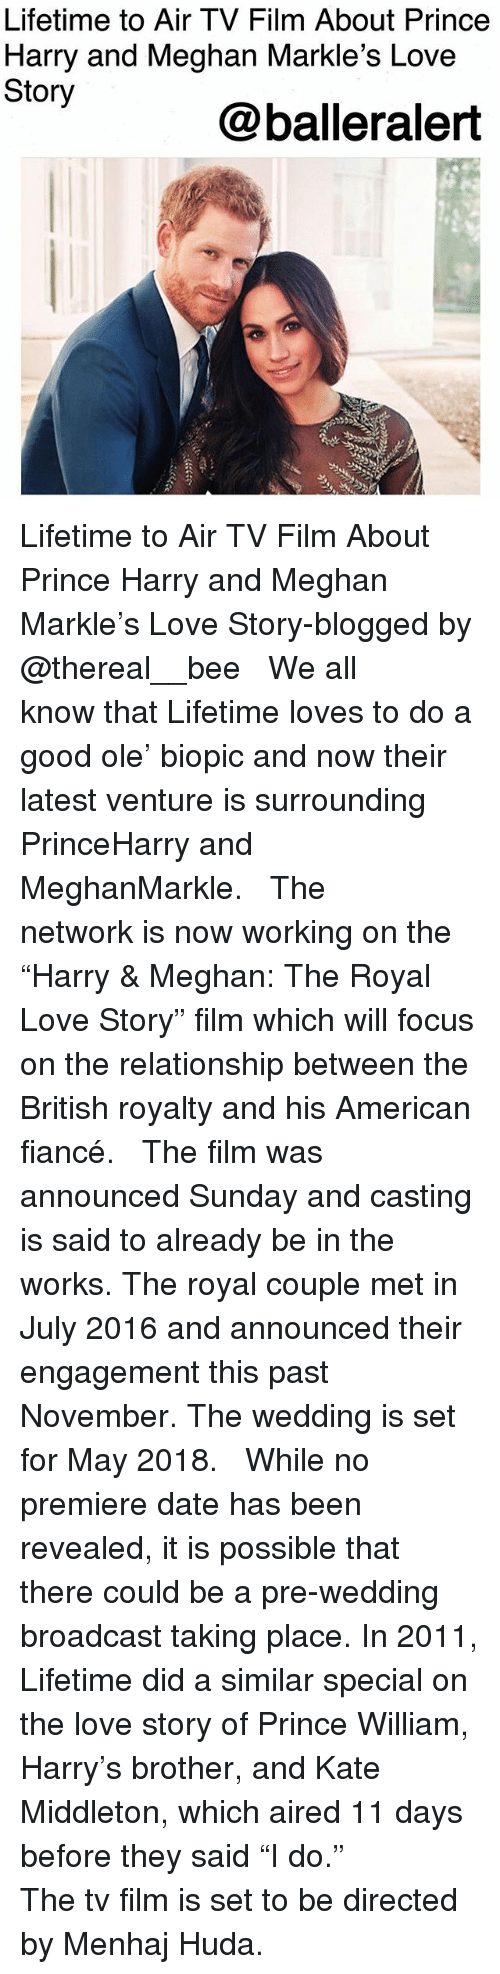 """Love, Memes, and Prince: Lifetime to Air TV Film About Prince  Harry and Meghan Markle's Love  Story  @balleralert Lifetime to Air TV Film About Prince Harry and Meghan Markle's Love Story-blogged by @thereal__bee ⠀⠀⠀⠀⠀⠀⠀ ⠀⠀⠀⠀ We all know that Lifetime loves to do a good ole' biopic and now their latest venture is surrounding PrinceHarry and MeghanMarkle. ⠀⠀⠀⠀⠀⠀⠀ ⠀⠀⠀⠀ The network is now working on the """"Harry & Meghan: The Royal Love Story"""" film which will focus on the relationship between the British royalty and his American fiancé. ⠀⠀⠀⠀⠀⠀⠀ ⠀⠀⠀⠀ The film was announced Sunday and casting is said to already be in the works. The royal couple met in July 2016 and announced their engagement this past November. The wedding is set for May 2018. ⠀⠀⠀⠀⠀⠀⠀ ⠀⠀⠀⠀ While no premiere date has been revealed, it is possible that there could be a pre-wedding broadcast taking place. In 2011, Lifetime did a similar special on the love story of Prince William, Harry's brother, and Kate Middleton, which aired 11 days before they said """"I do."""" ⠀⠀⠀⠀⠀⠀⠀ ⠀⠀⠀⠀ The tv film is set to be directed by Menhaj Huda."""